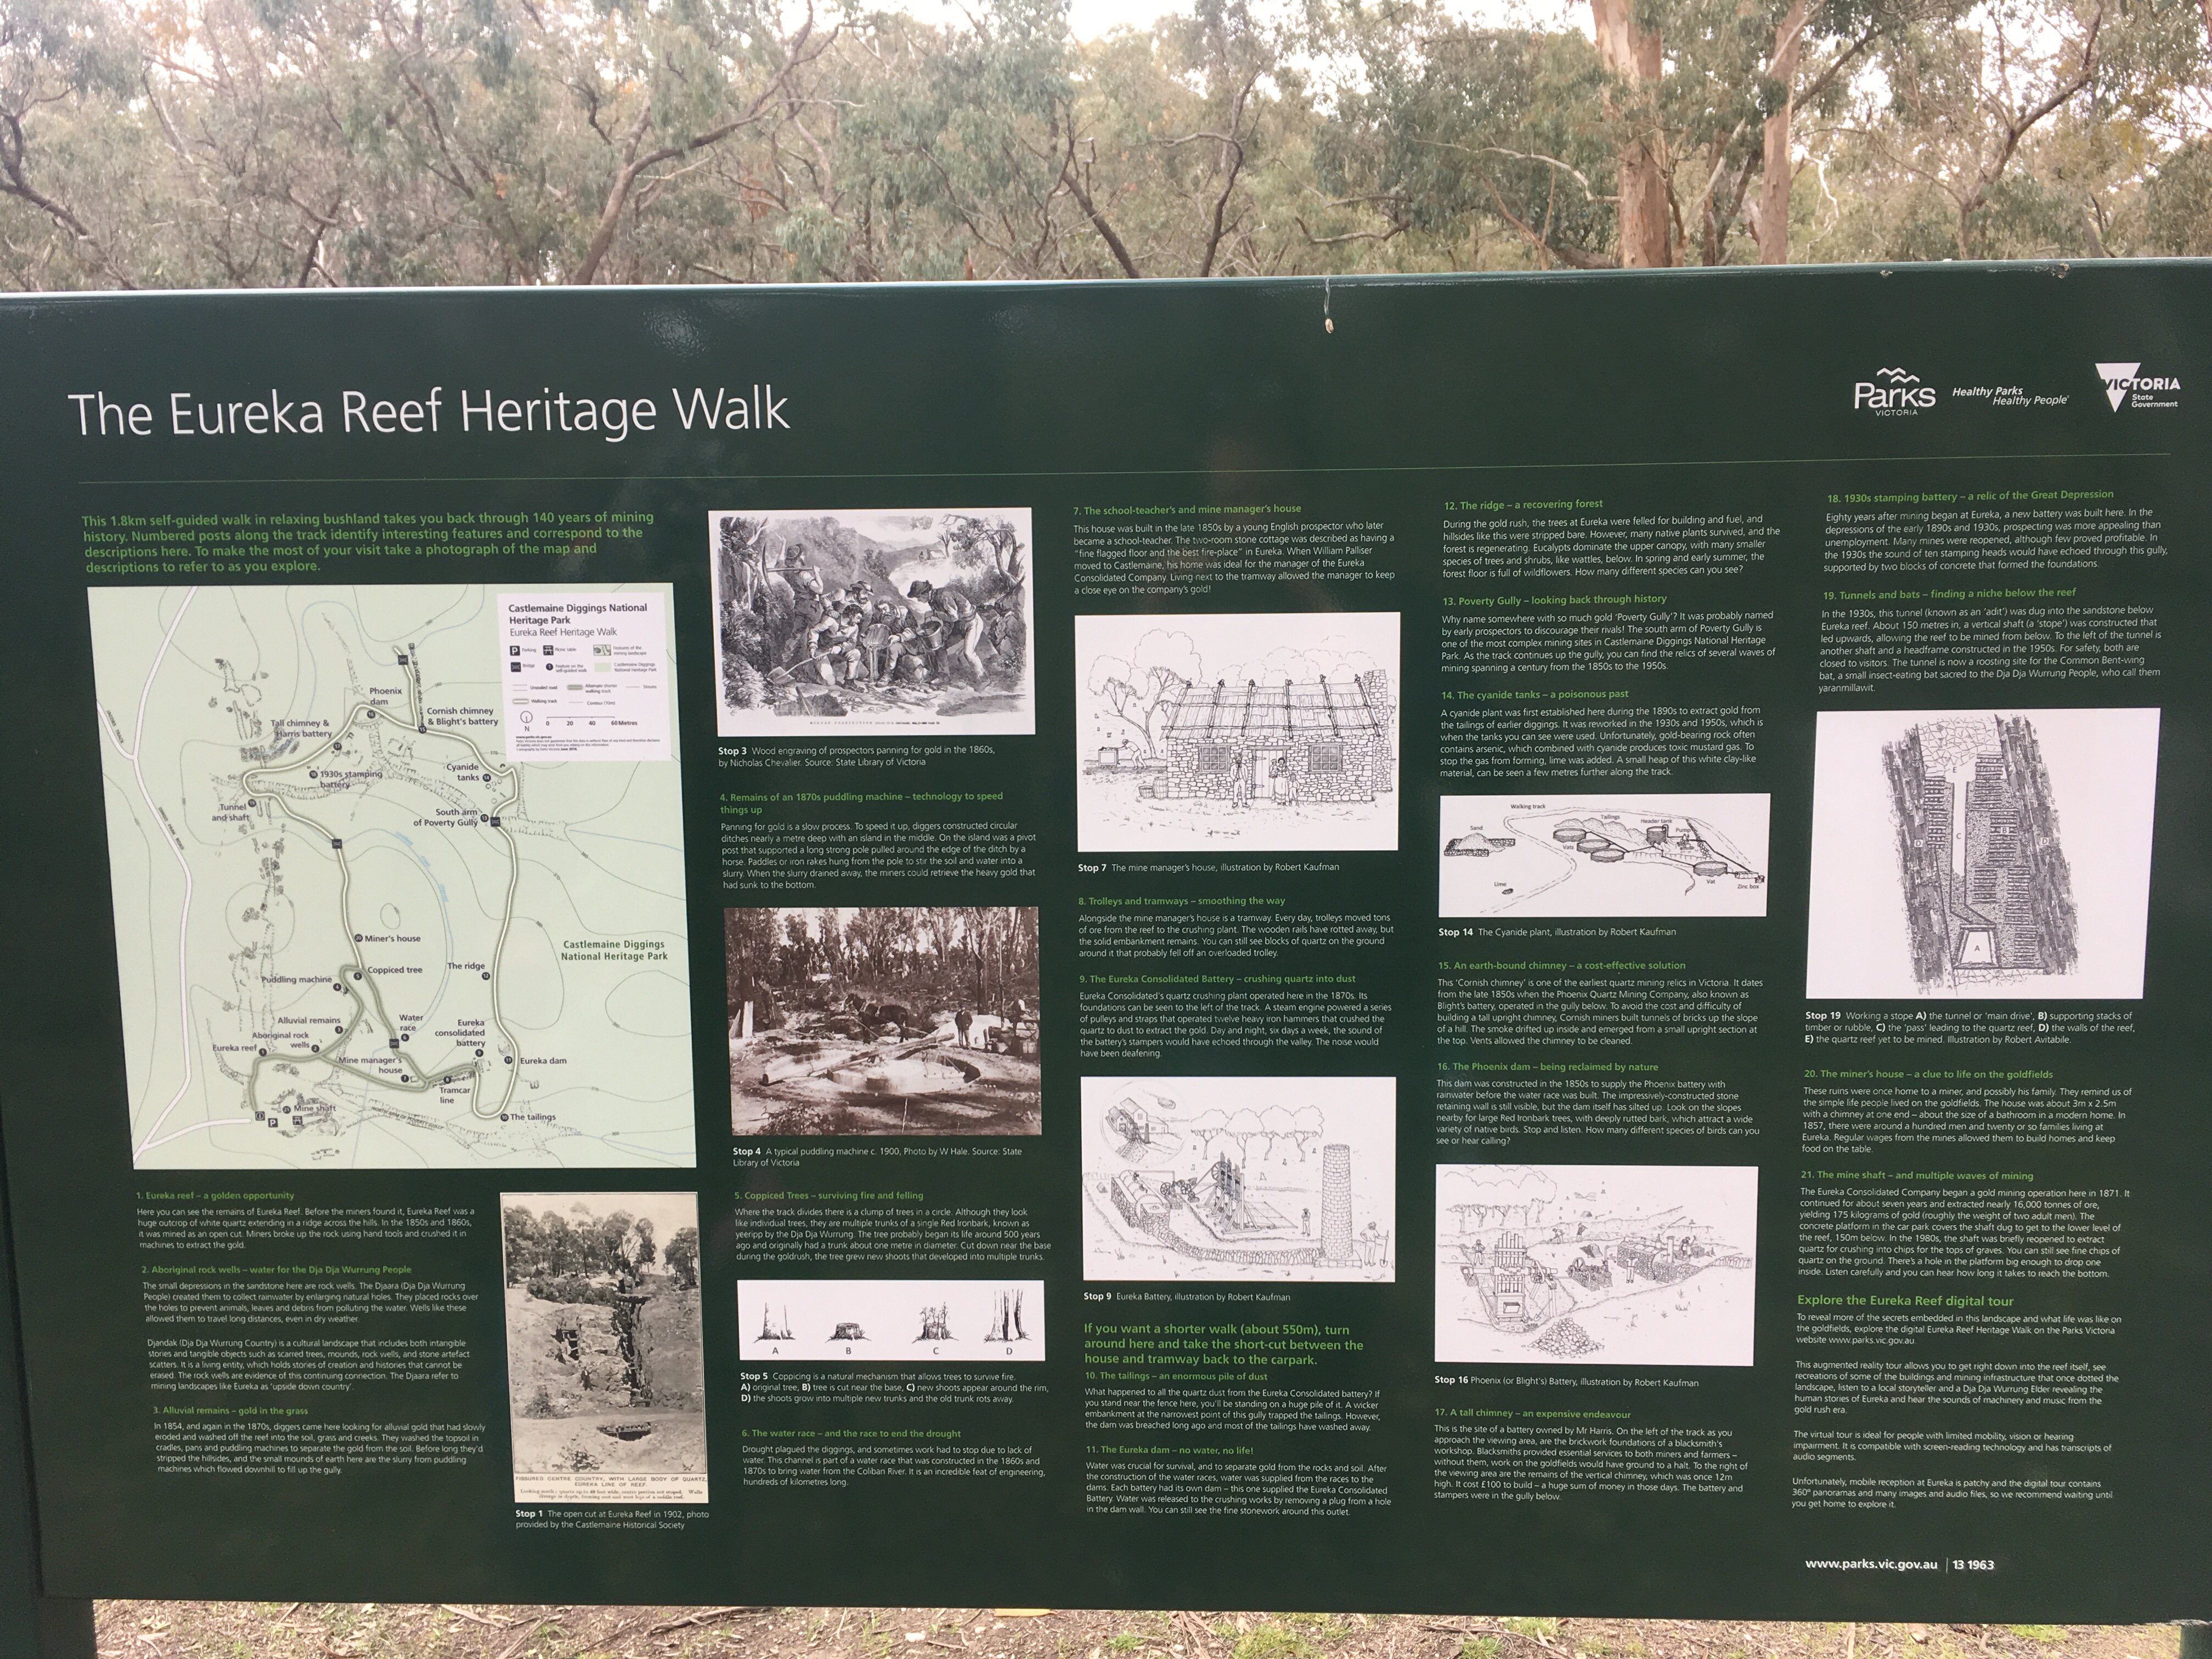 Information board at Eureka Reef showing history of the goldmine and a map of the walk